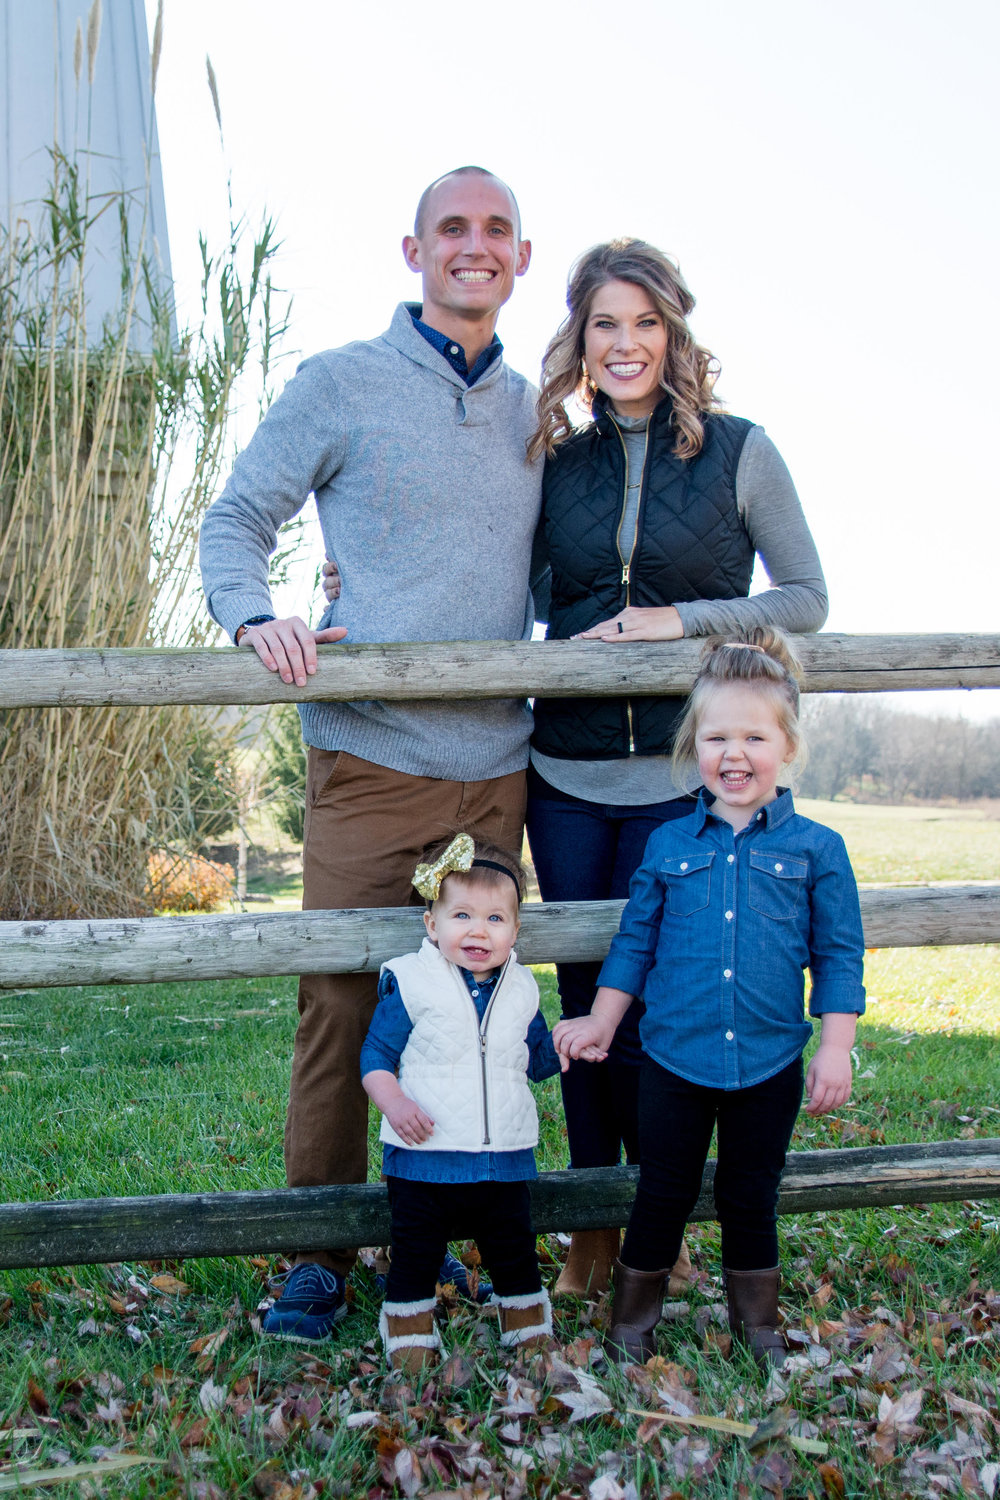 After being raised and baptized in Dallas, TX, Willie moved to Lawrence, Kansas to play football and study Secondary History Education at the University of Kansas. He Now serve as an Evangelist in Lawrence, working with Campus Ministry and Young Professionals along with his beautiful wife, Katie. They have 2 beautiful daughters, Kaylie and Kylie.